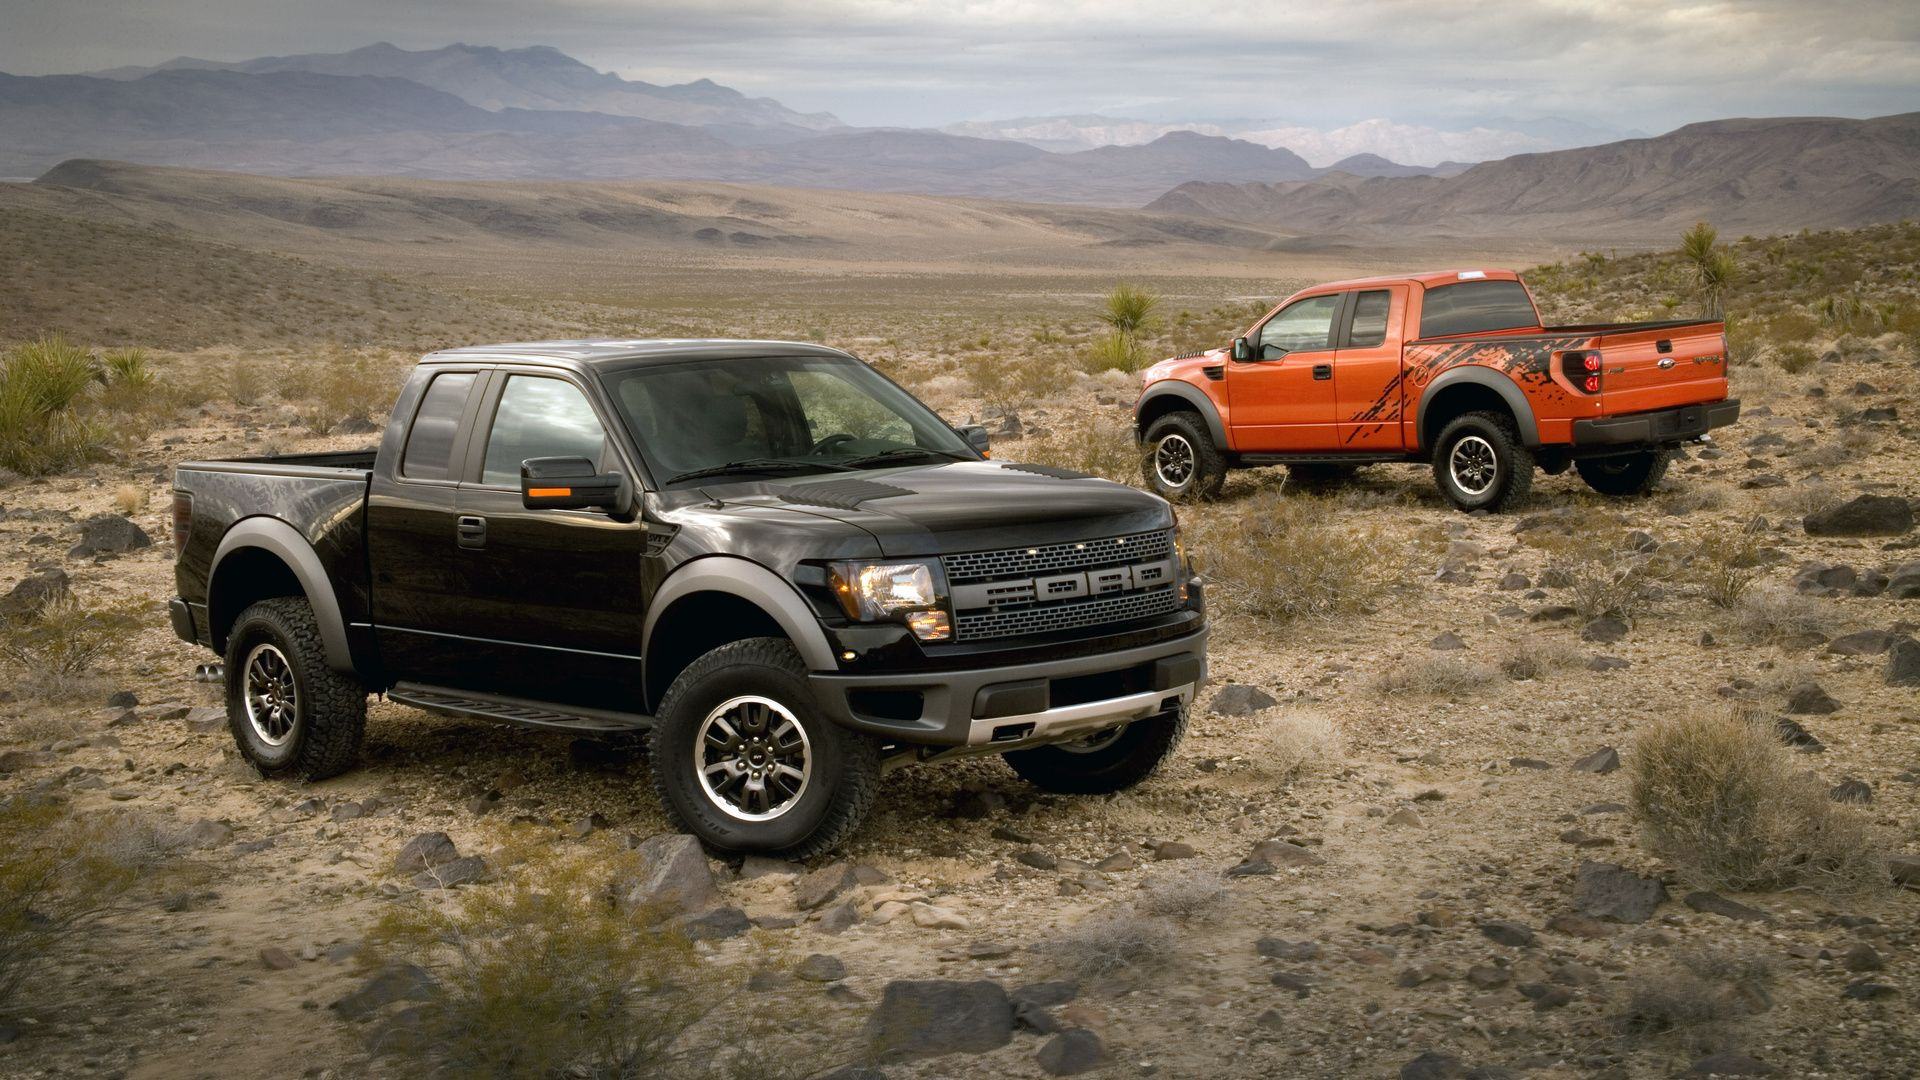 ford raptor wallpapers walls wallpaper ford f150 wallsford